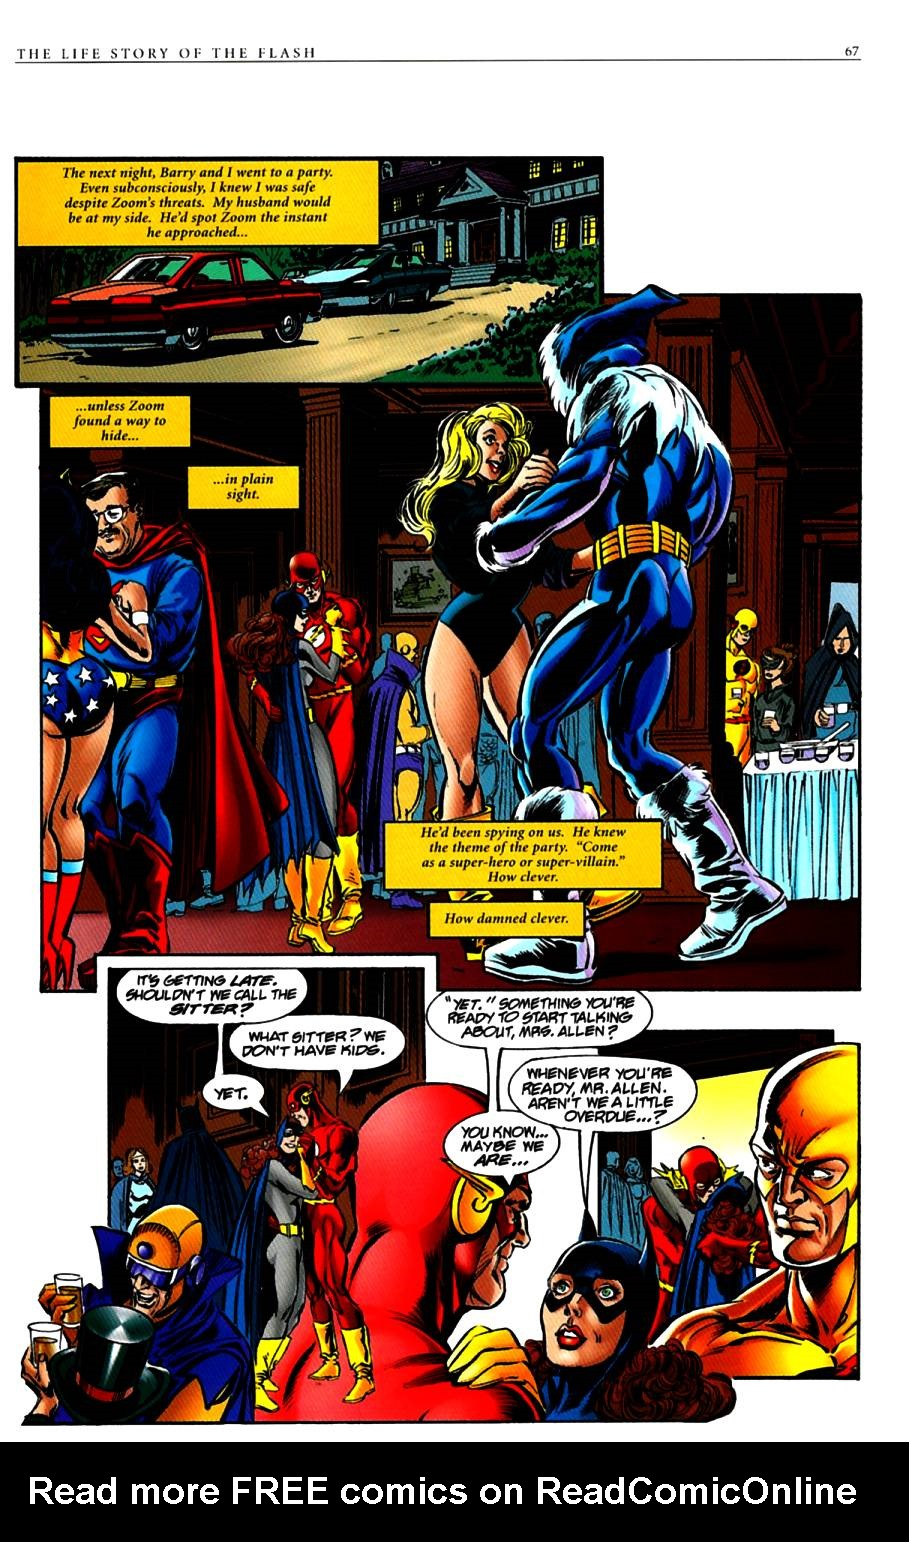 Read online The Life Story of the Flash comic -  Issue # Full - 69